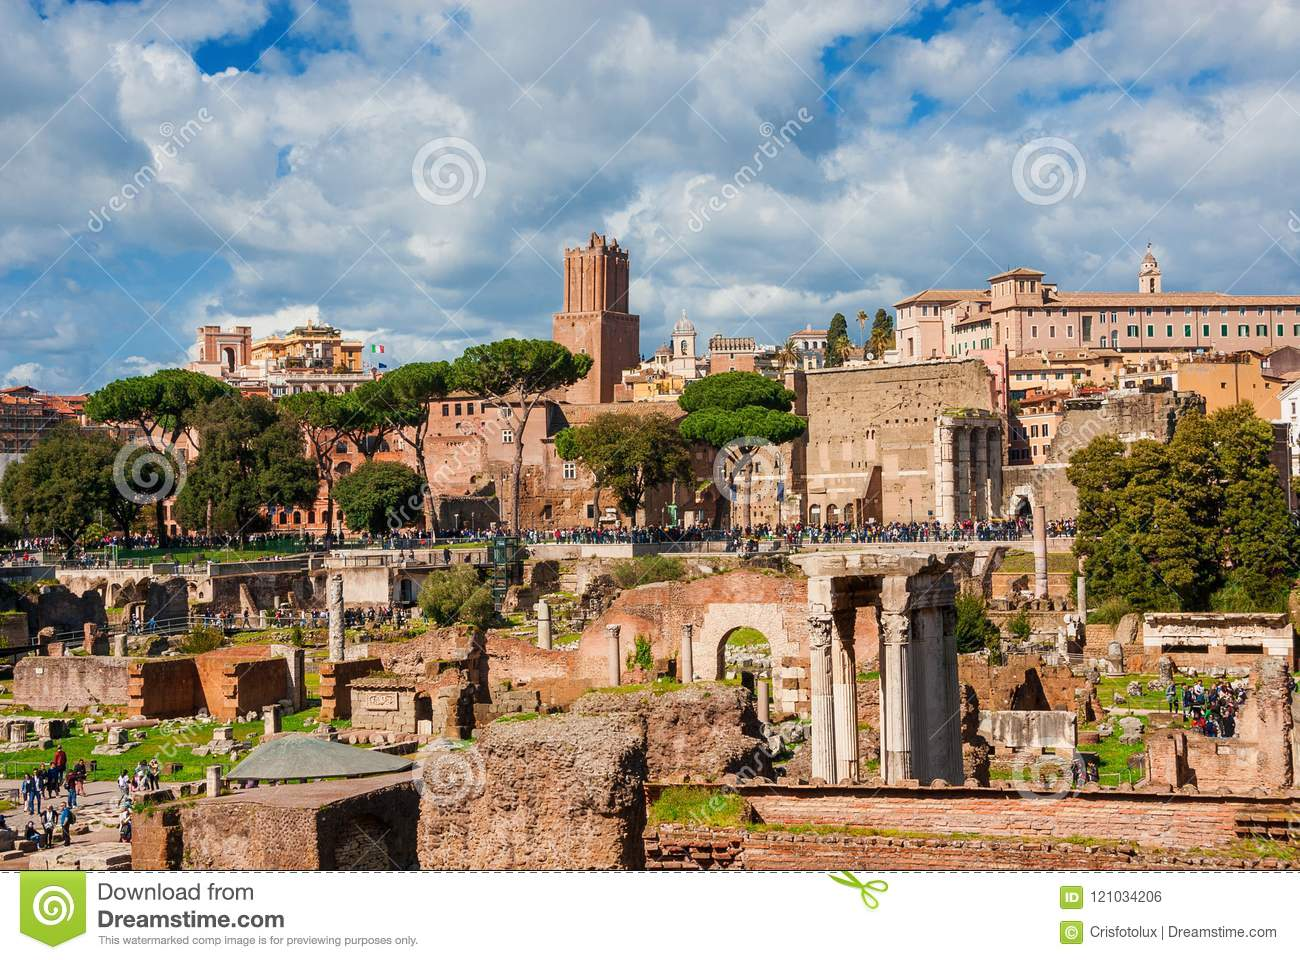 Visiting Roman and Imperial Forum in Rome